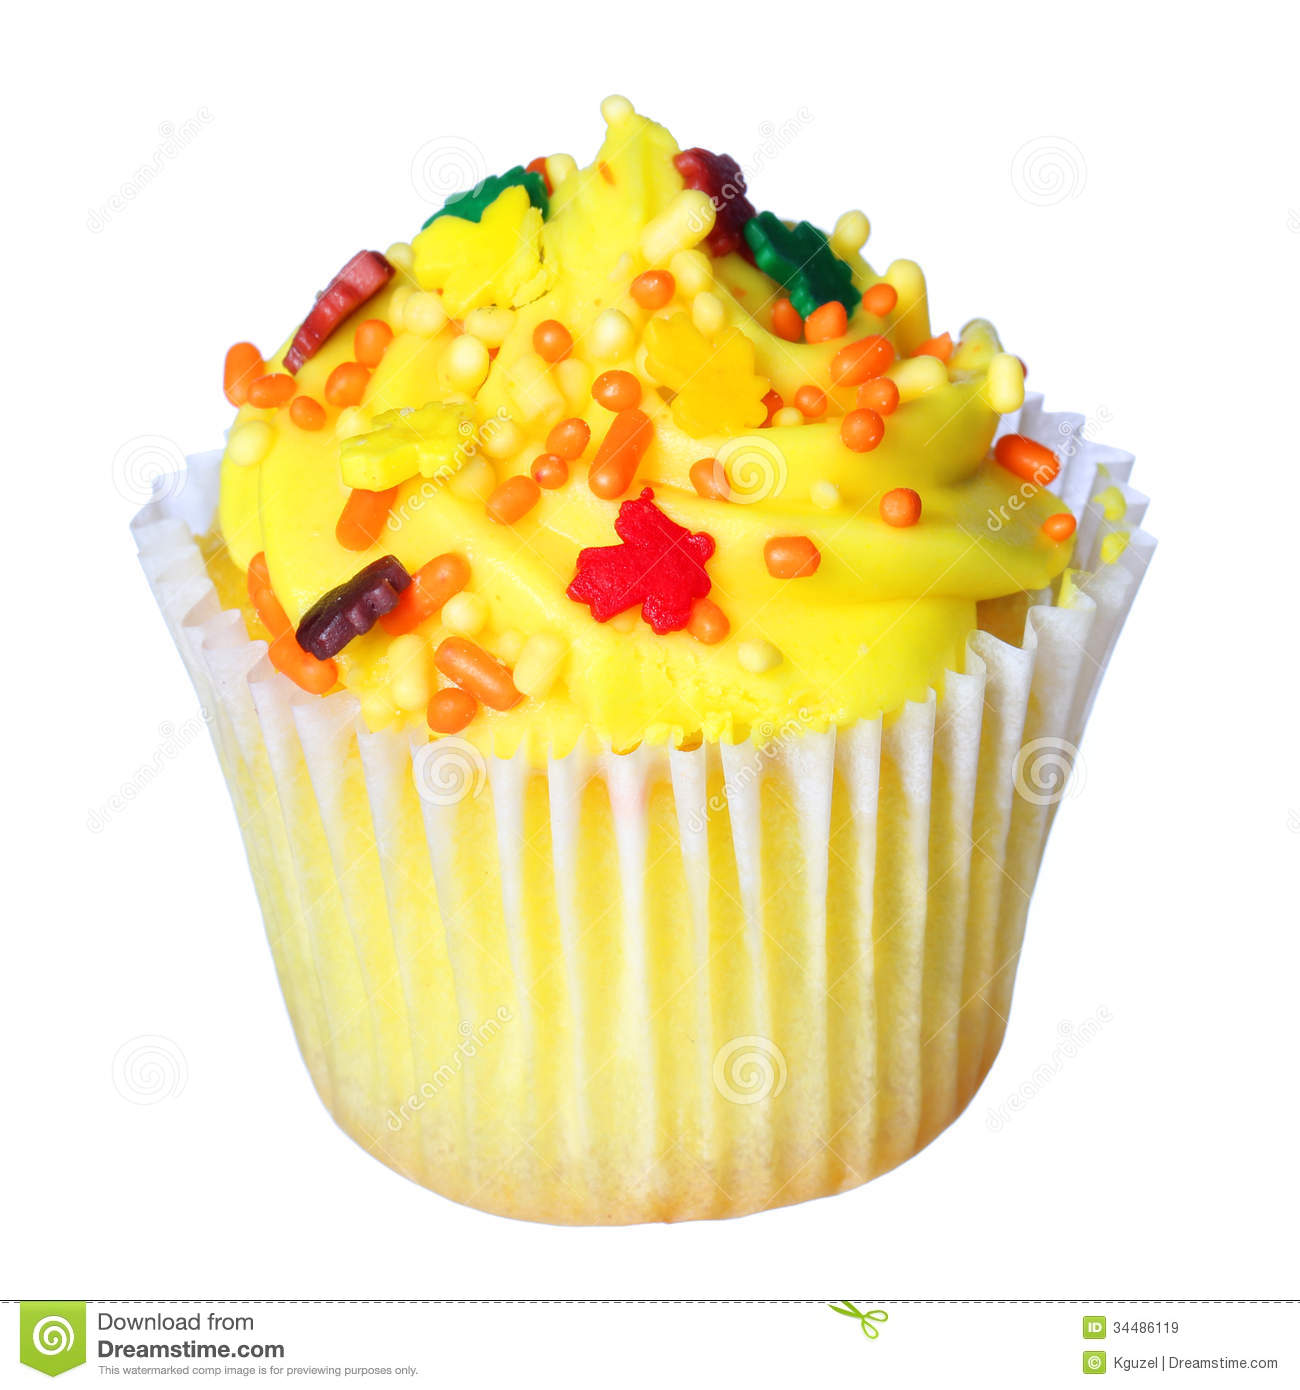 Cupcake With Yellow Frosting And Colored Sprinkles